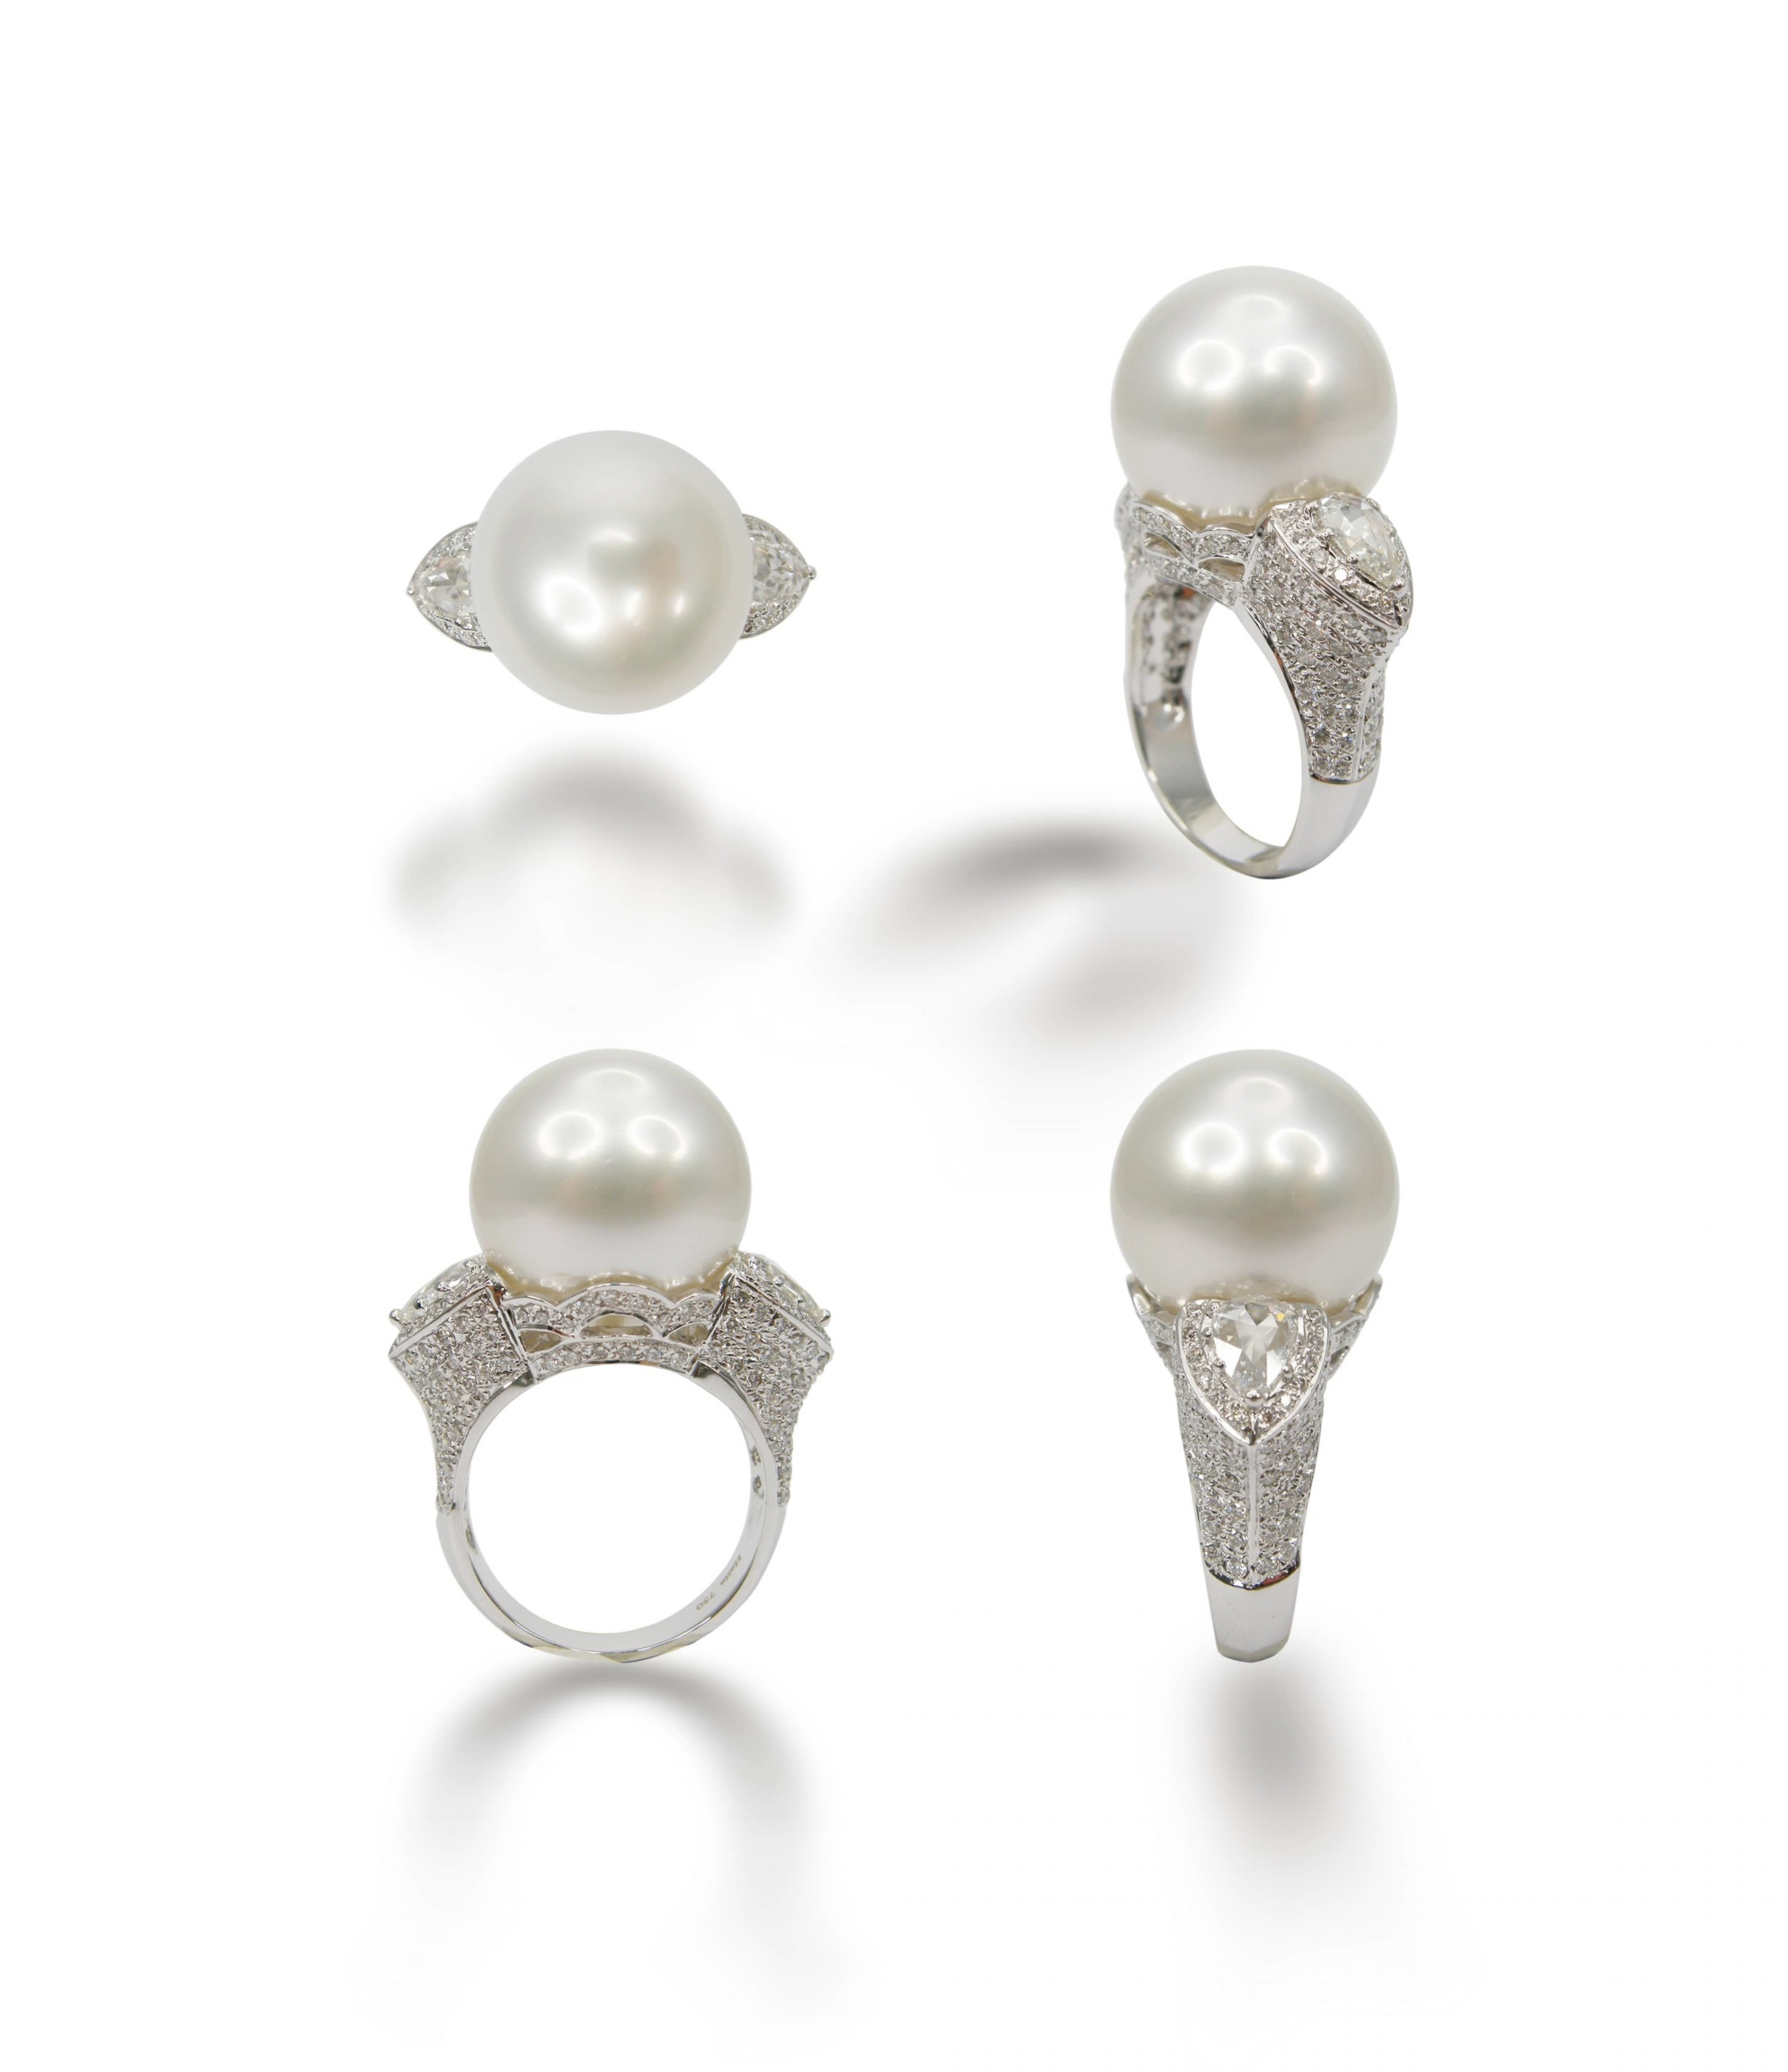 WHITE SOUTH SEA PEARL RING BESPOKE FINE JEWELLERY BY SHAHINA HATTA